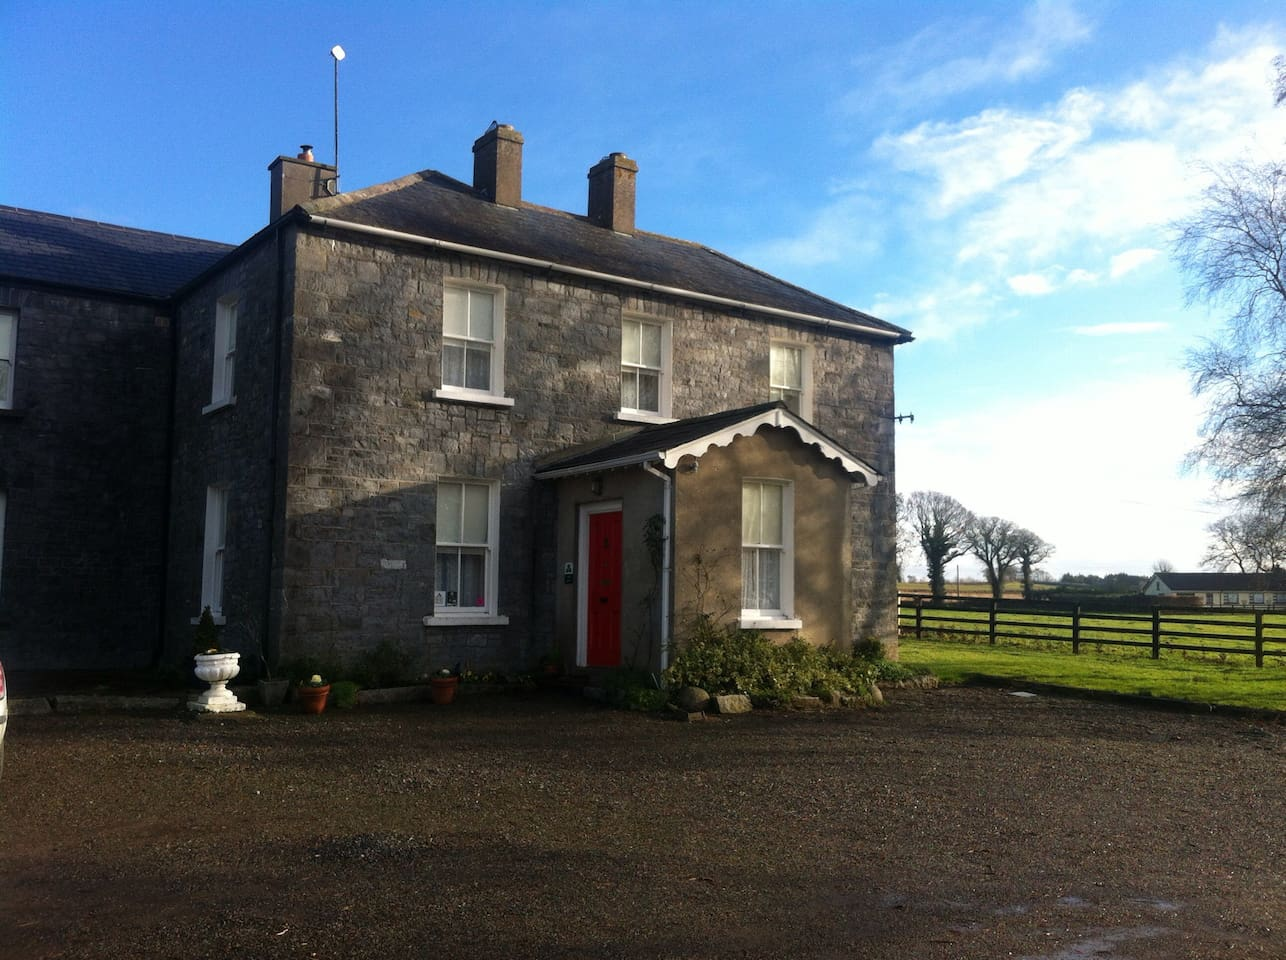 Moate Lodge 18th century farm house